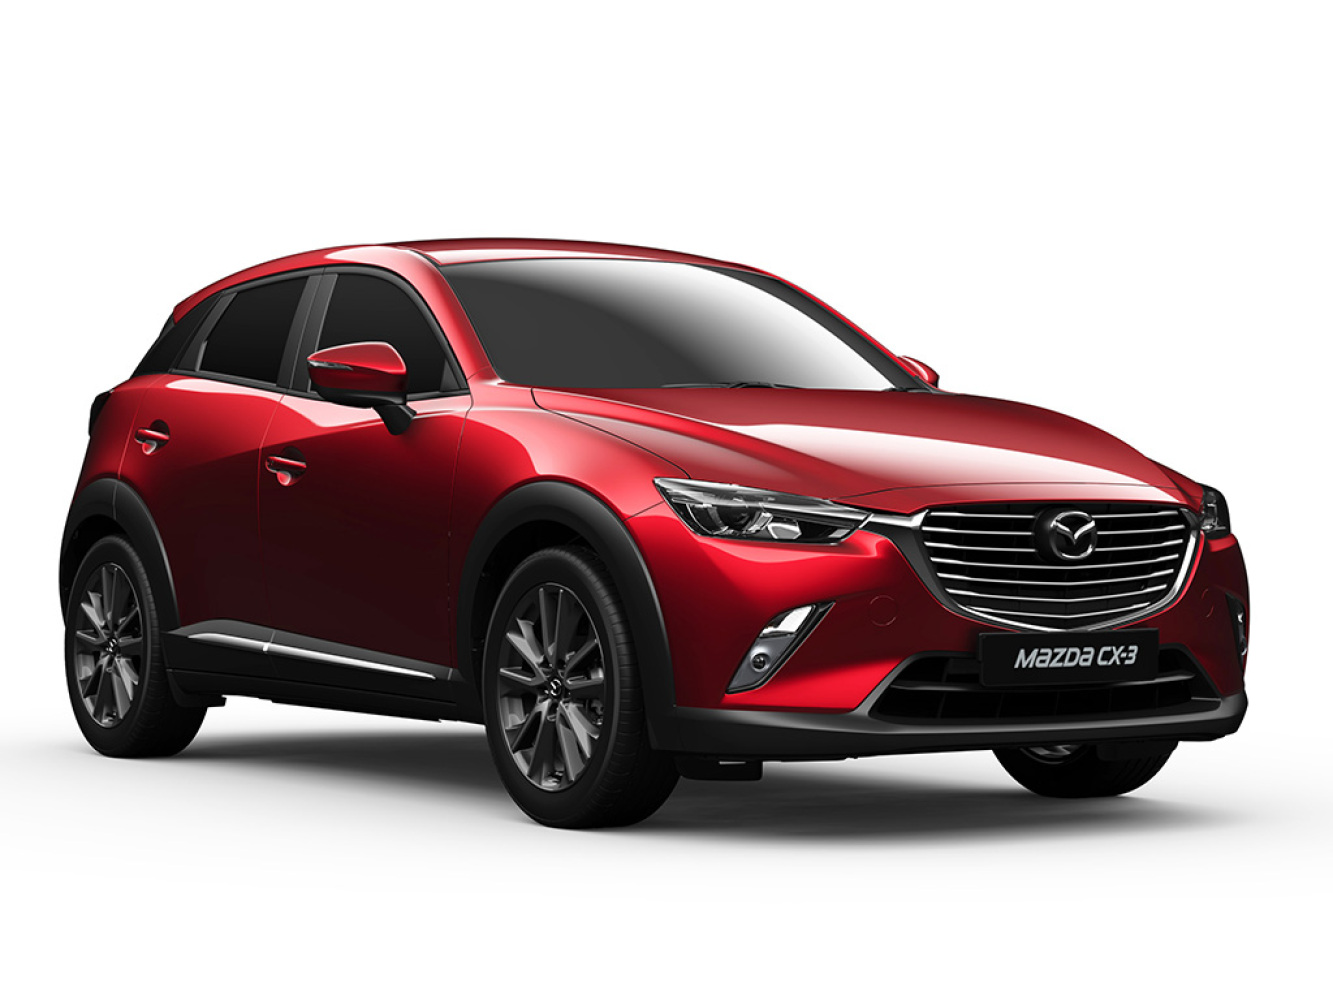 new mazda cx 3 2 0 sport black 5dr petrol hatchback for. Black Bedroom Furniture Sets. Home Design Ideas